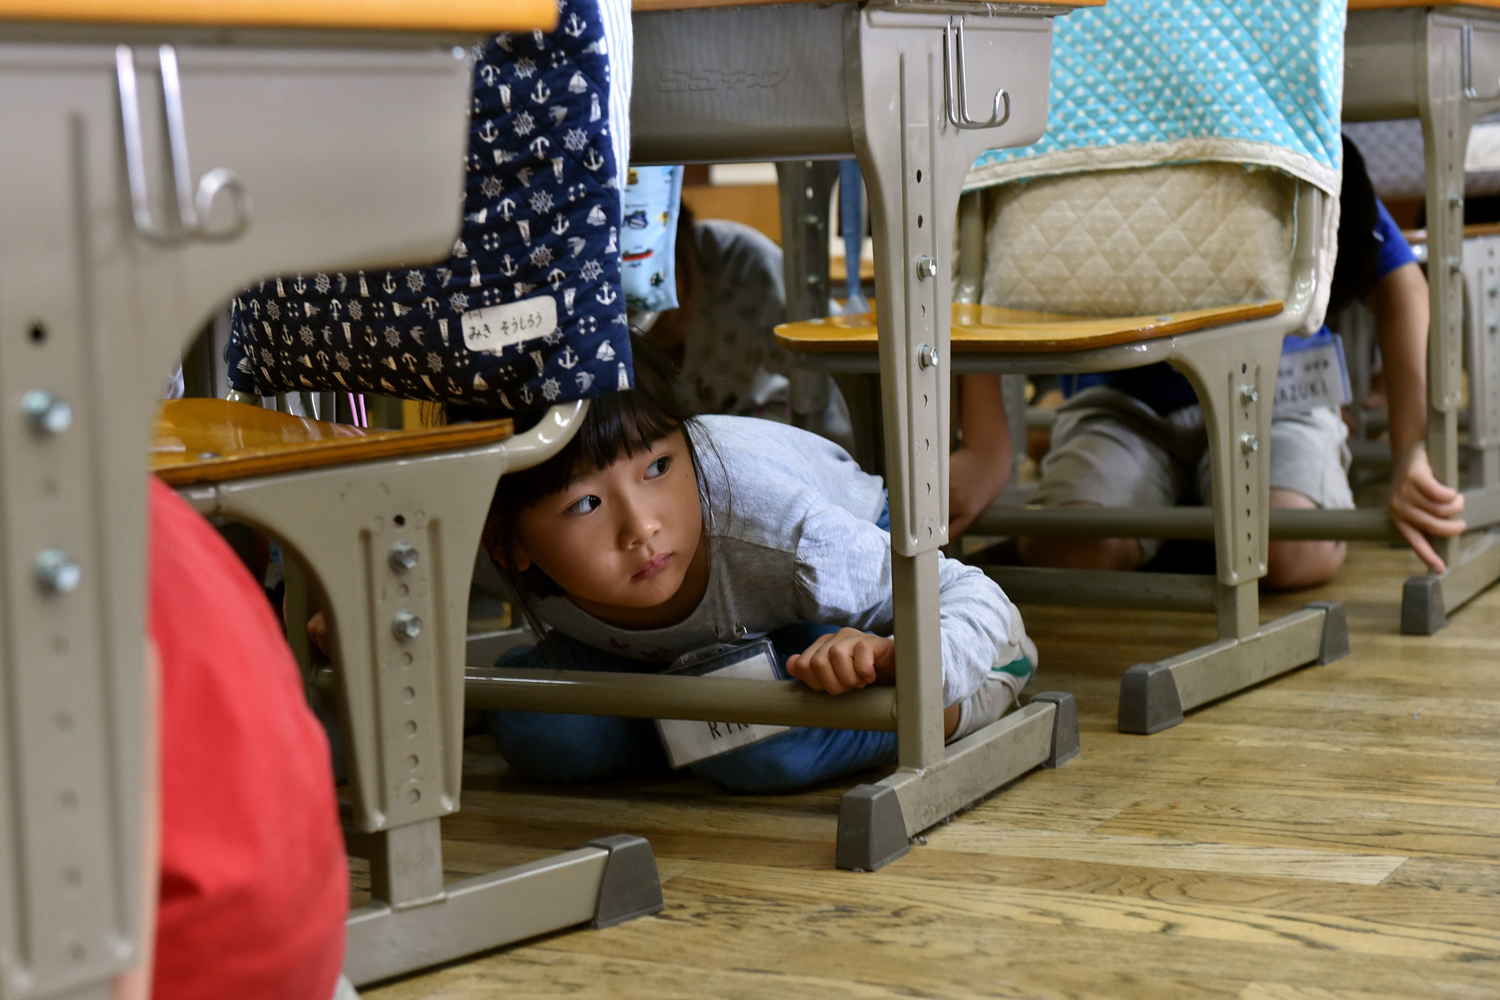 Sept. 1, 2014. Elementary school children take cover under their desks during an earthquake drill at a school in Tokyo on. Nationwide anti-disaster drills were held on September 1 on the anniversary of the massive 1923 earthquake which killed more than 140,000 people in the Tokyo metropolitan area.